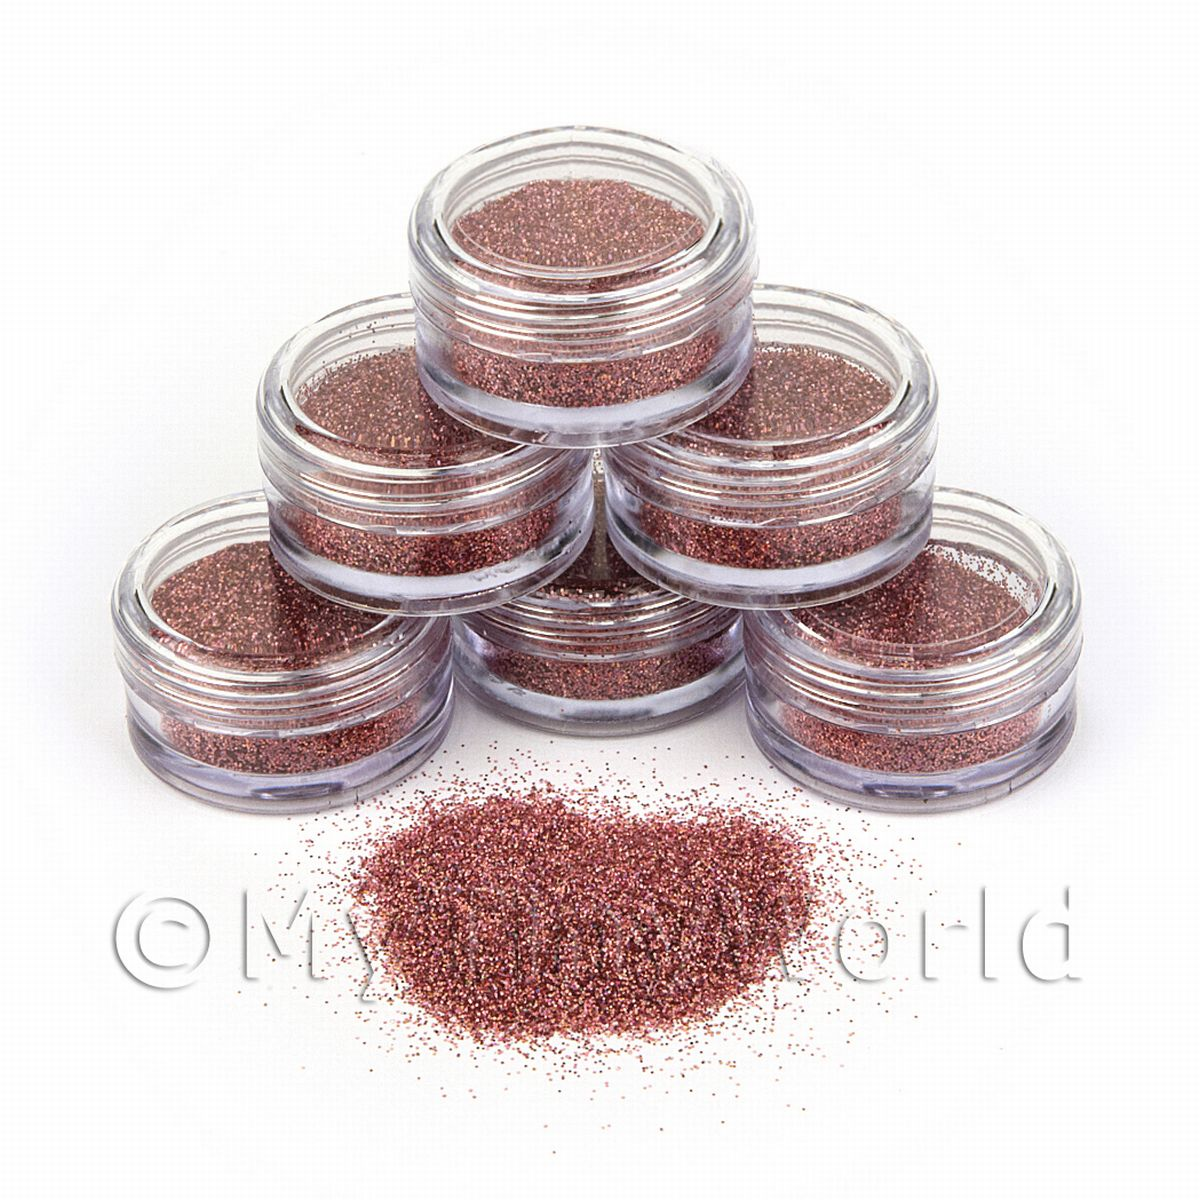 High Quality Nail Art Glitter - 2g Pot - Vibrant Violet